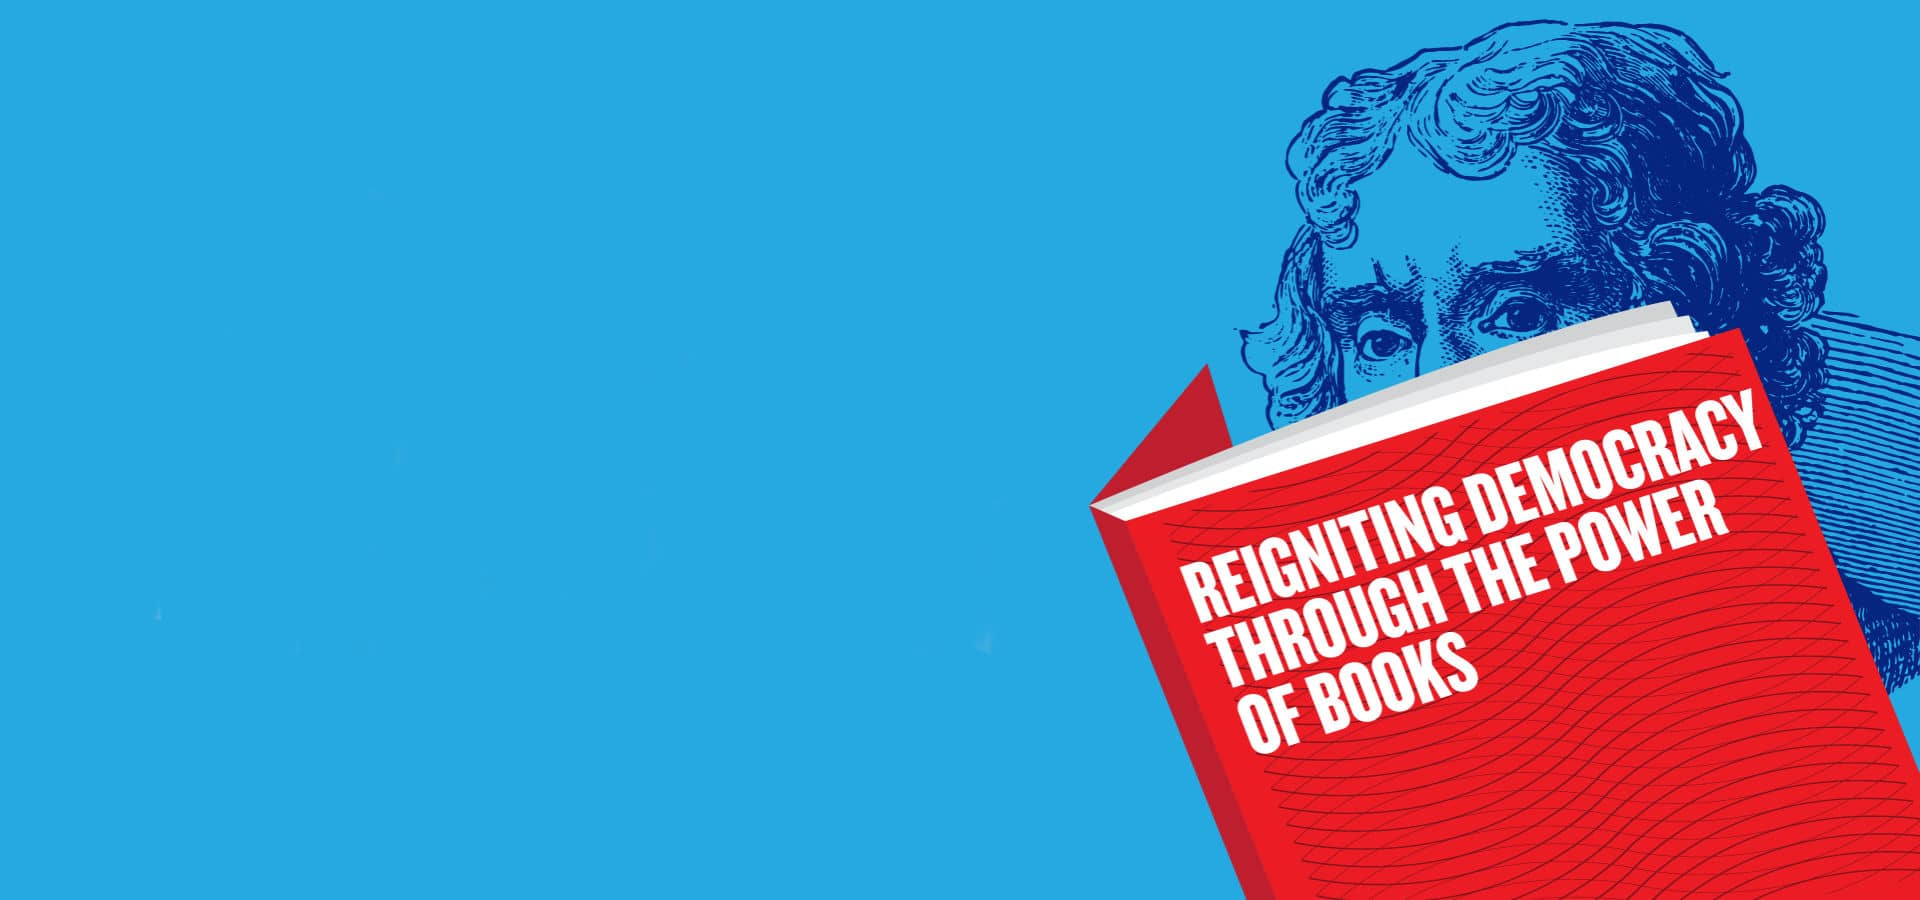 Reigniting Democracy Through the Power of Books